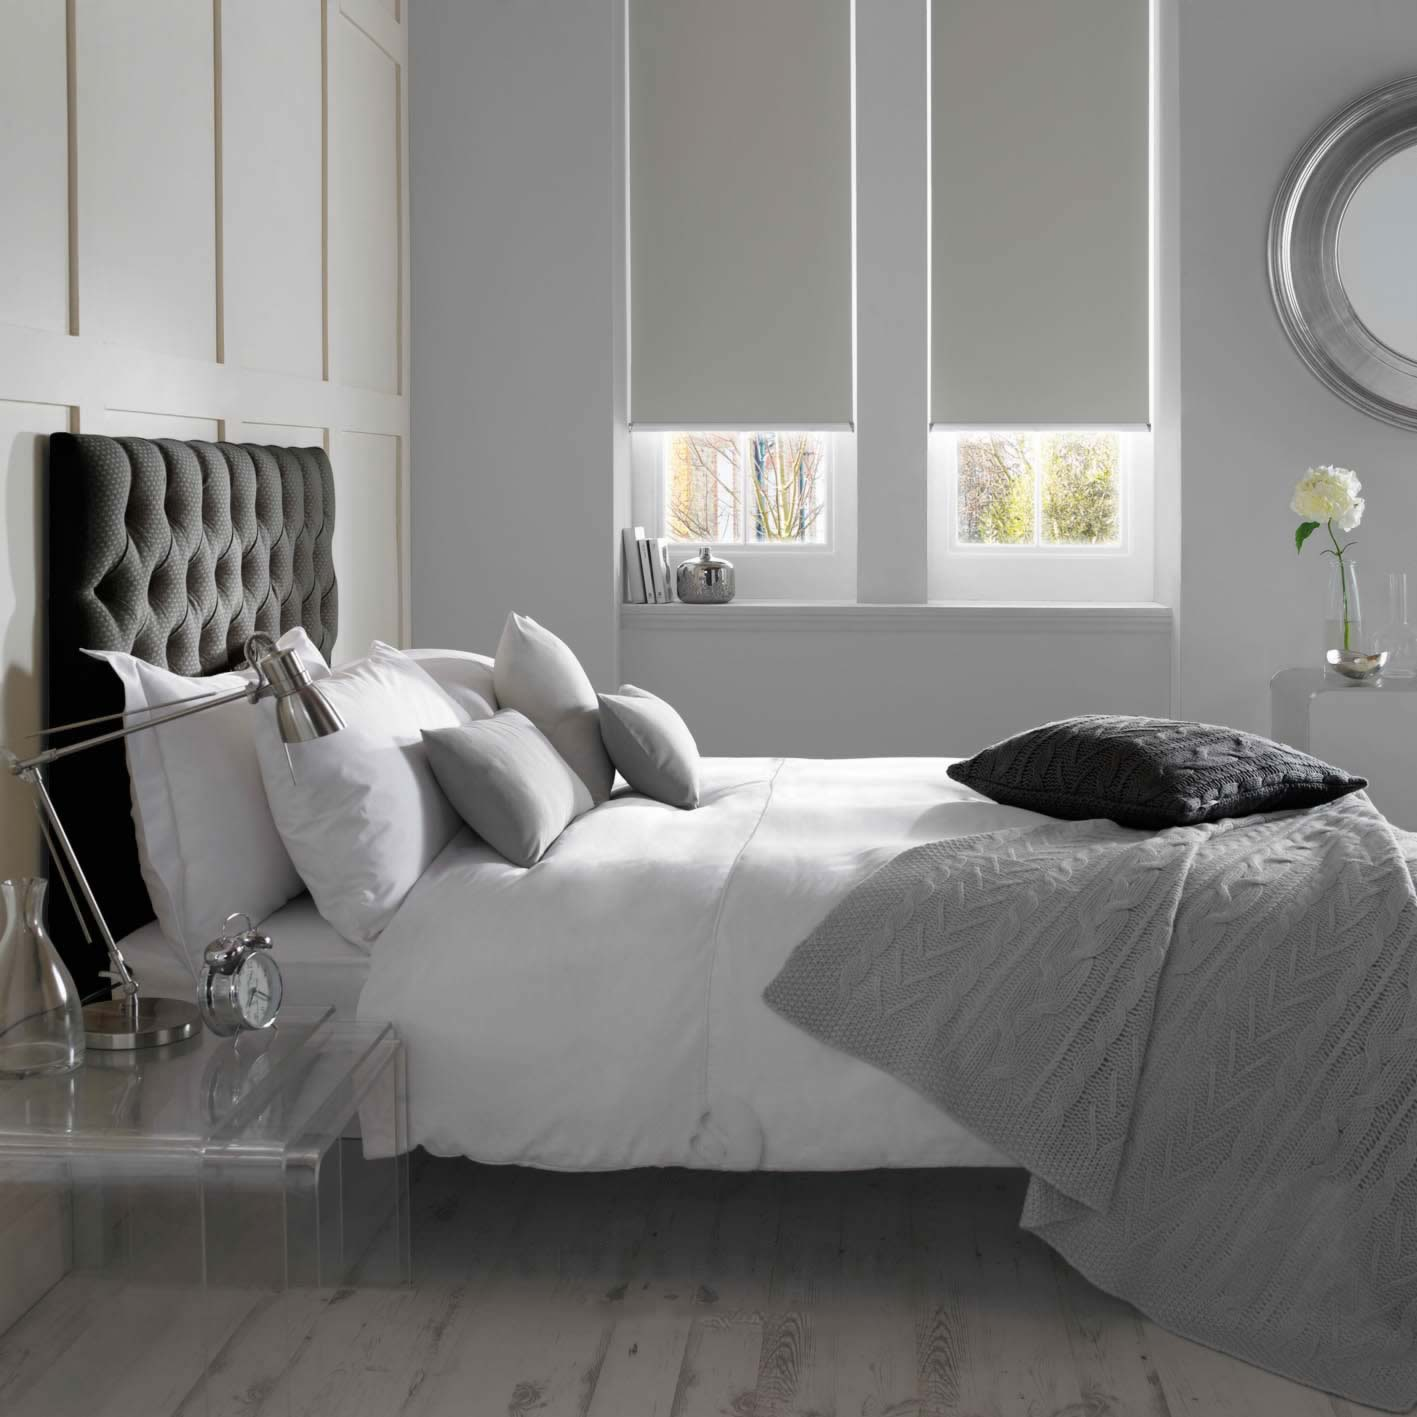 Senses Roller Blinds - Banlight BO Silver